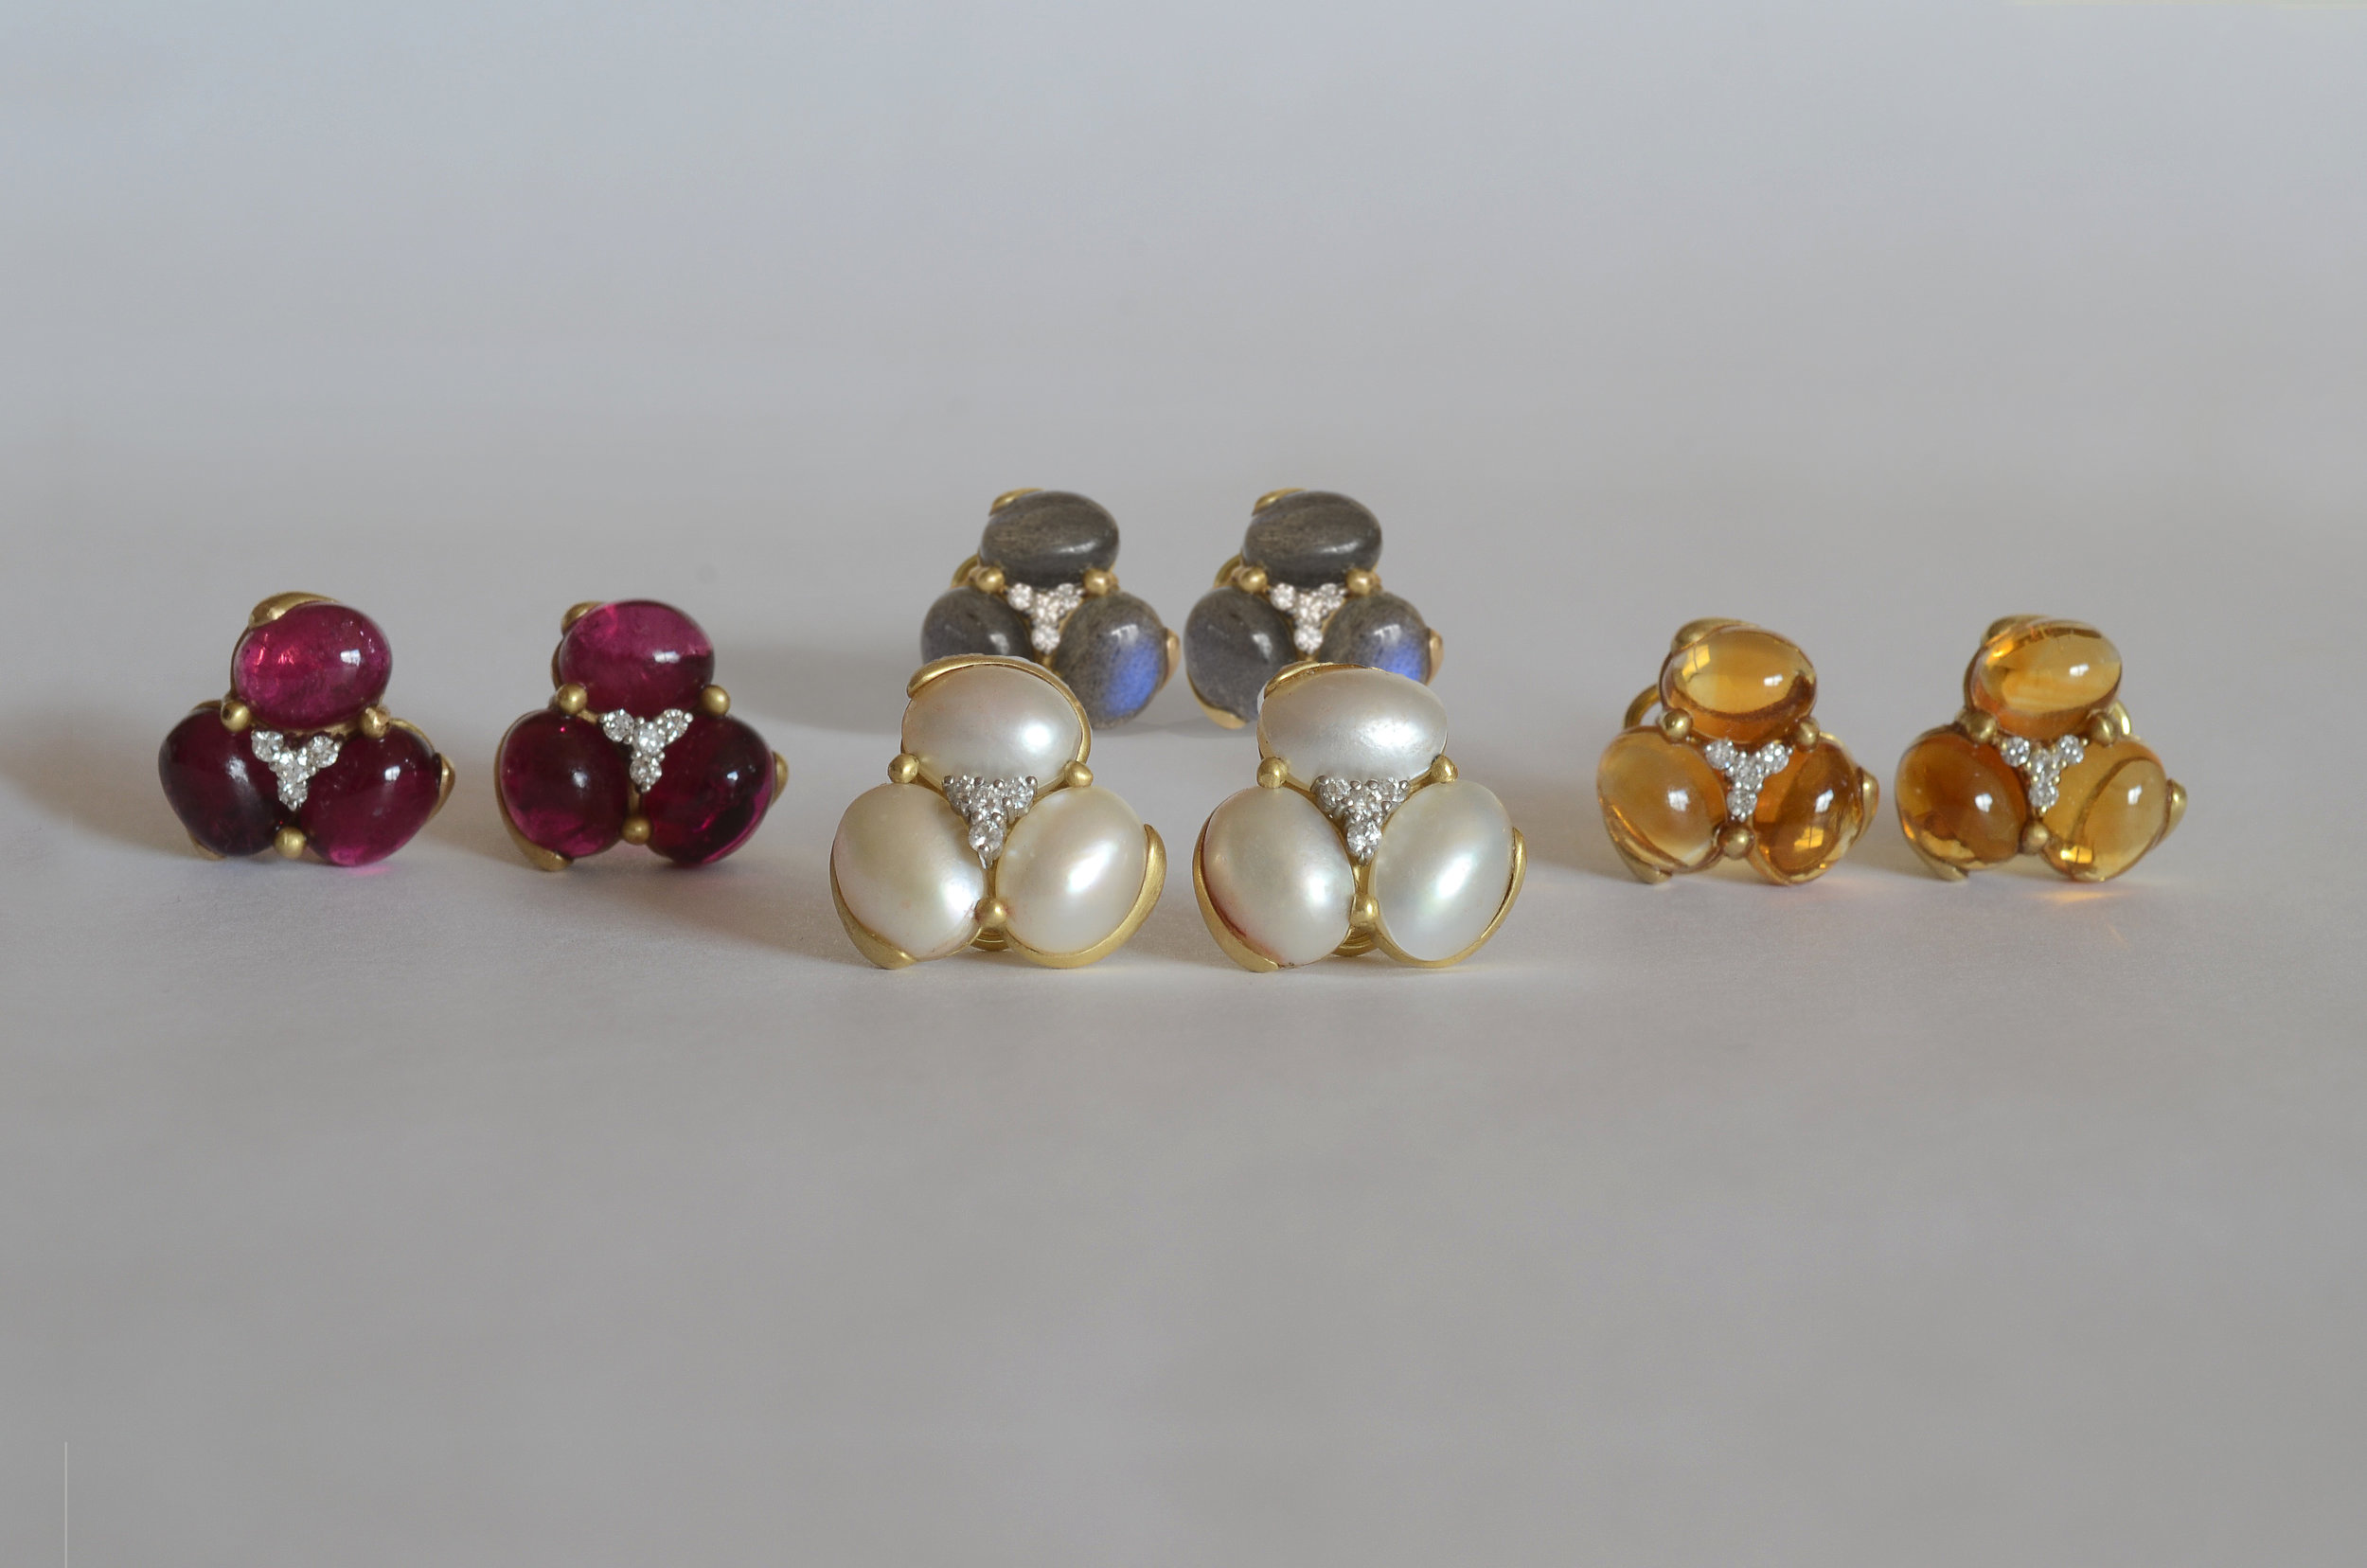 Cluster Stone and .26 Carat Diamond Earrings in 14kt Yellow Gold